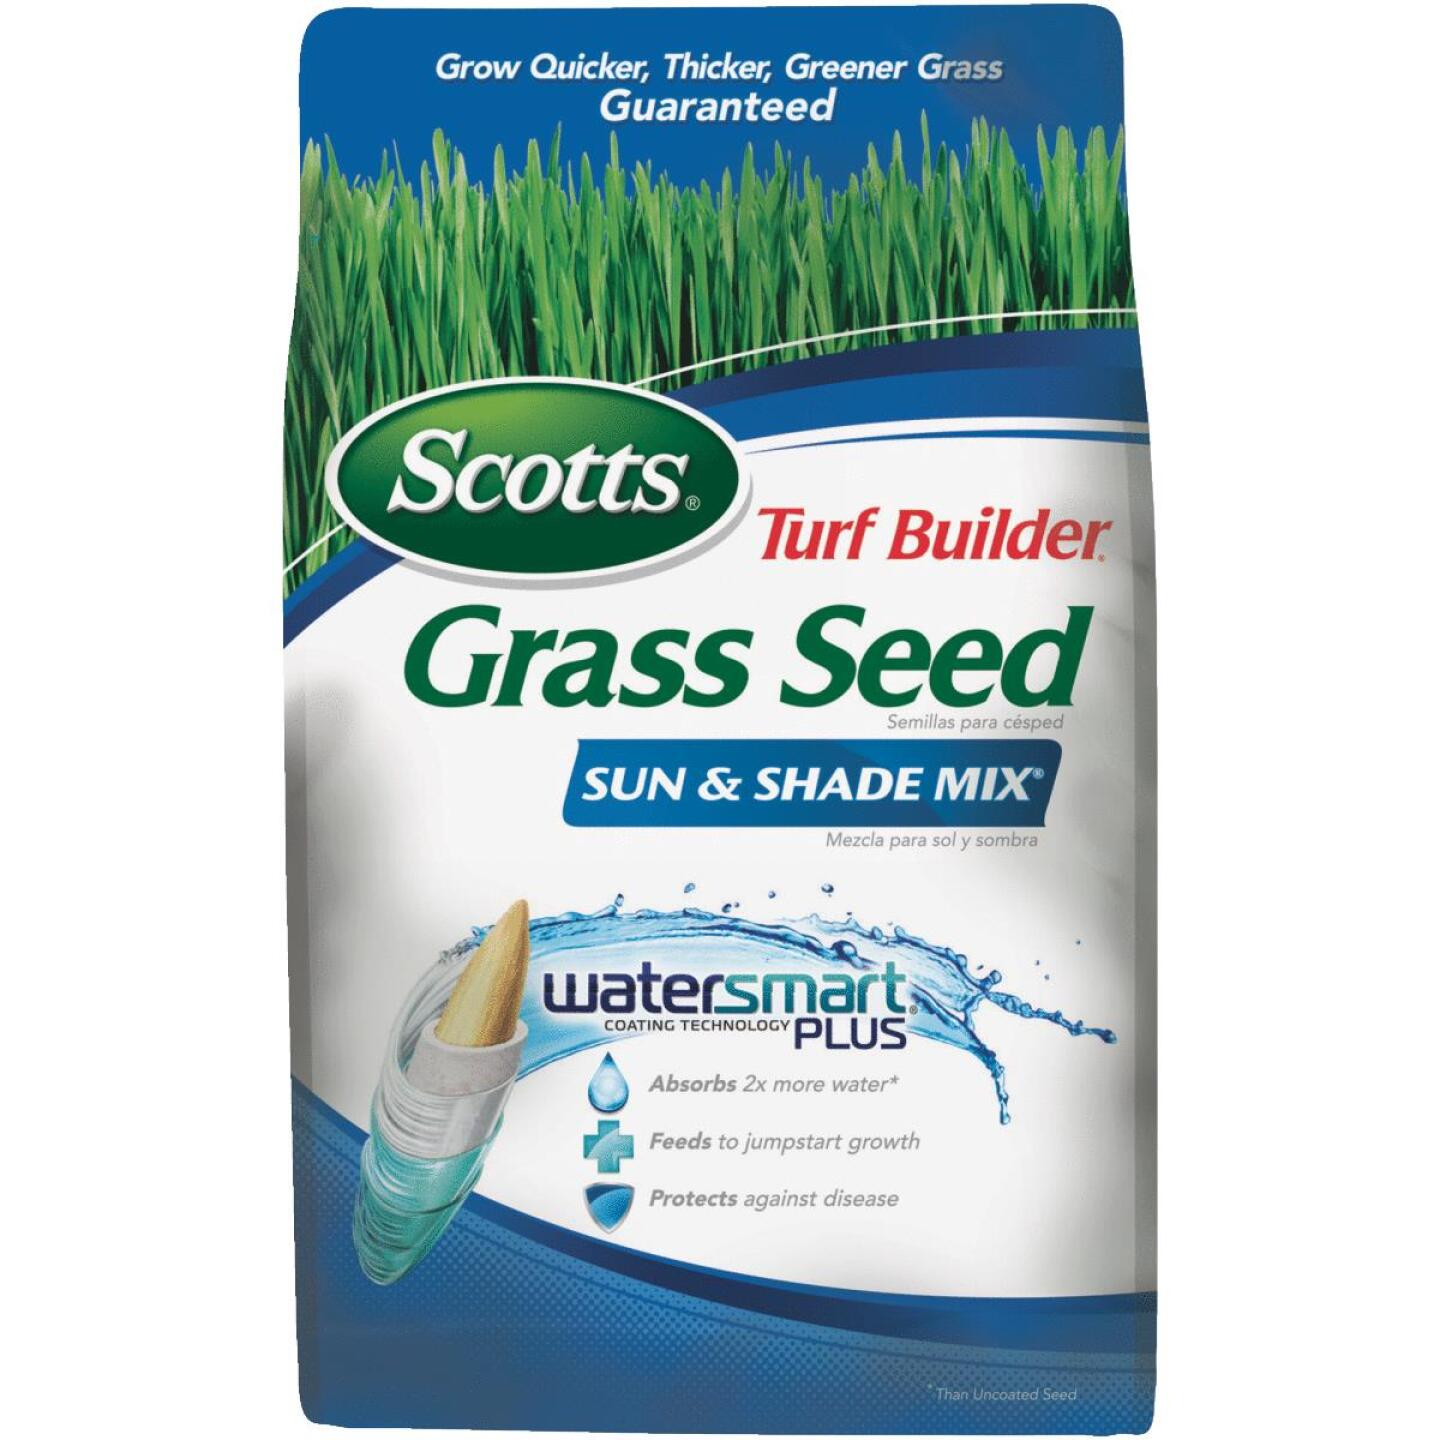 Scotts Turf Builder 3 Lb. Up To 1200 Sq. Ft. Coverage Sun & Shade Grass Seed Image 1